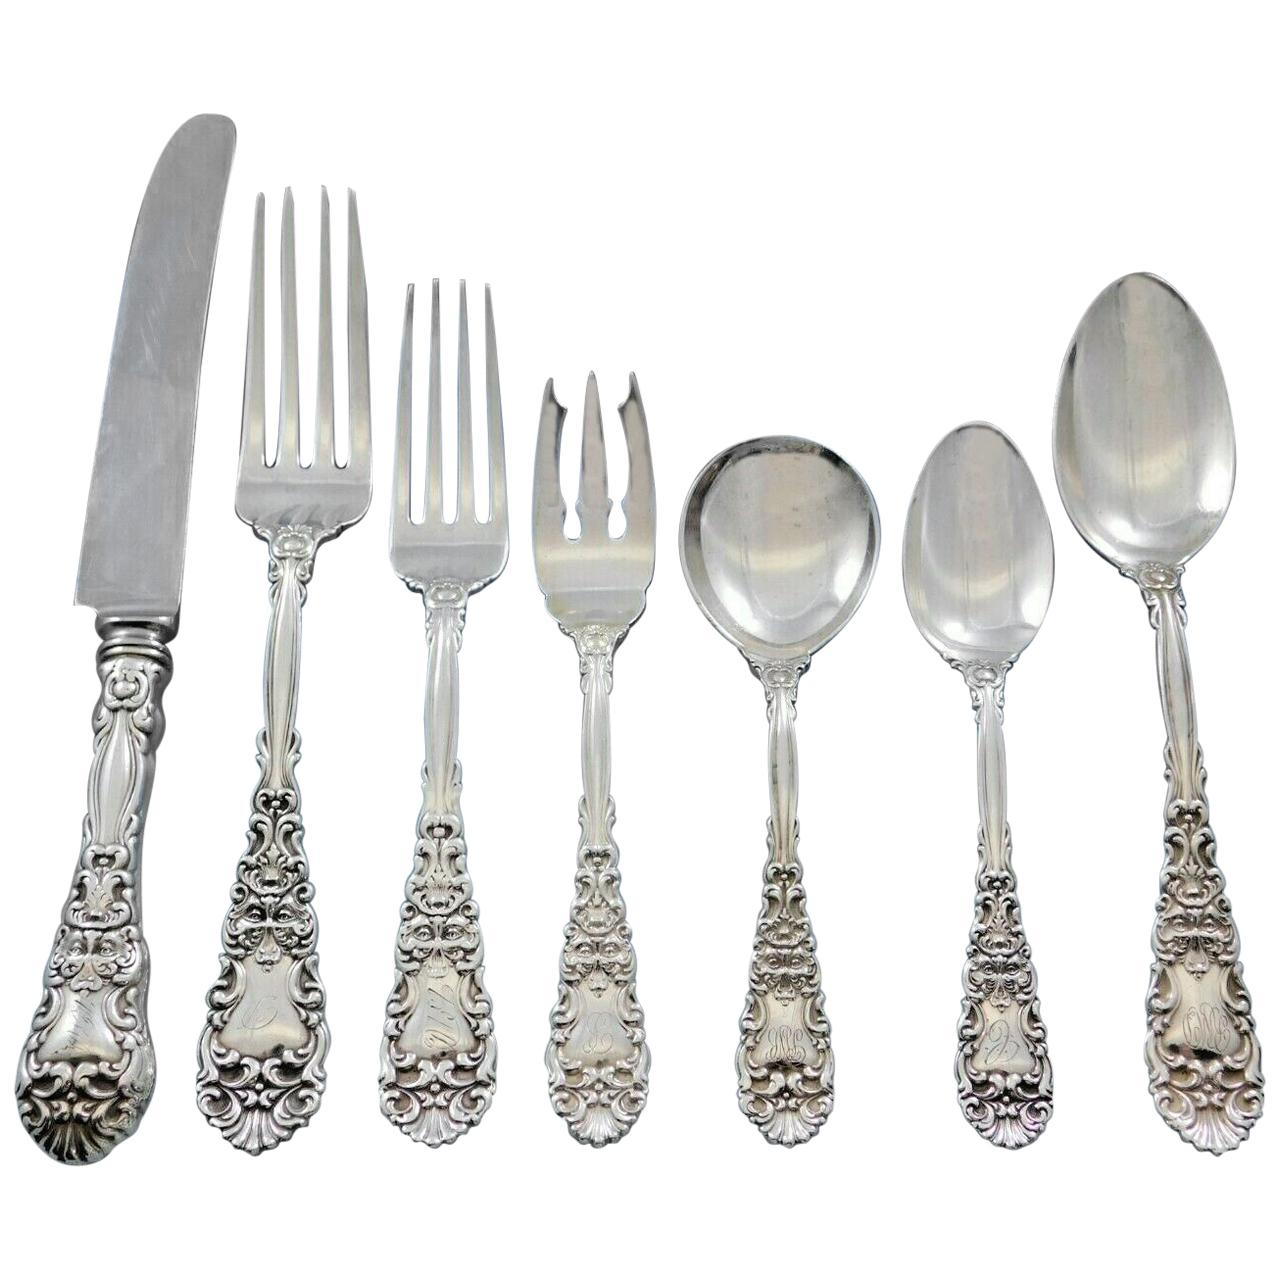 Renaissance by Dominick /& Haff Sterling Silver Place Soup Spoon 7